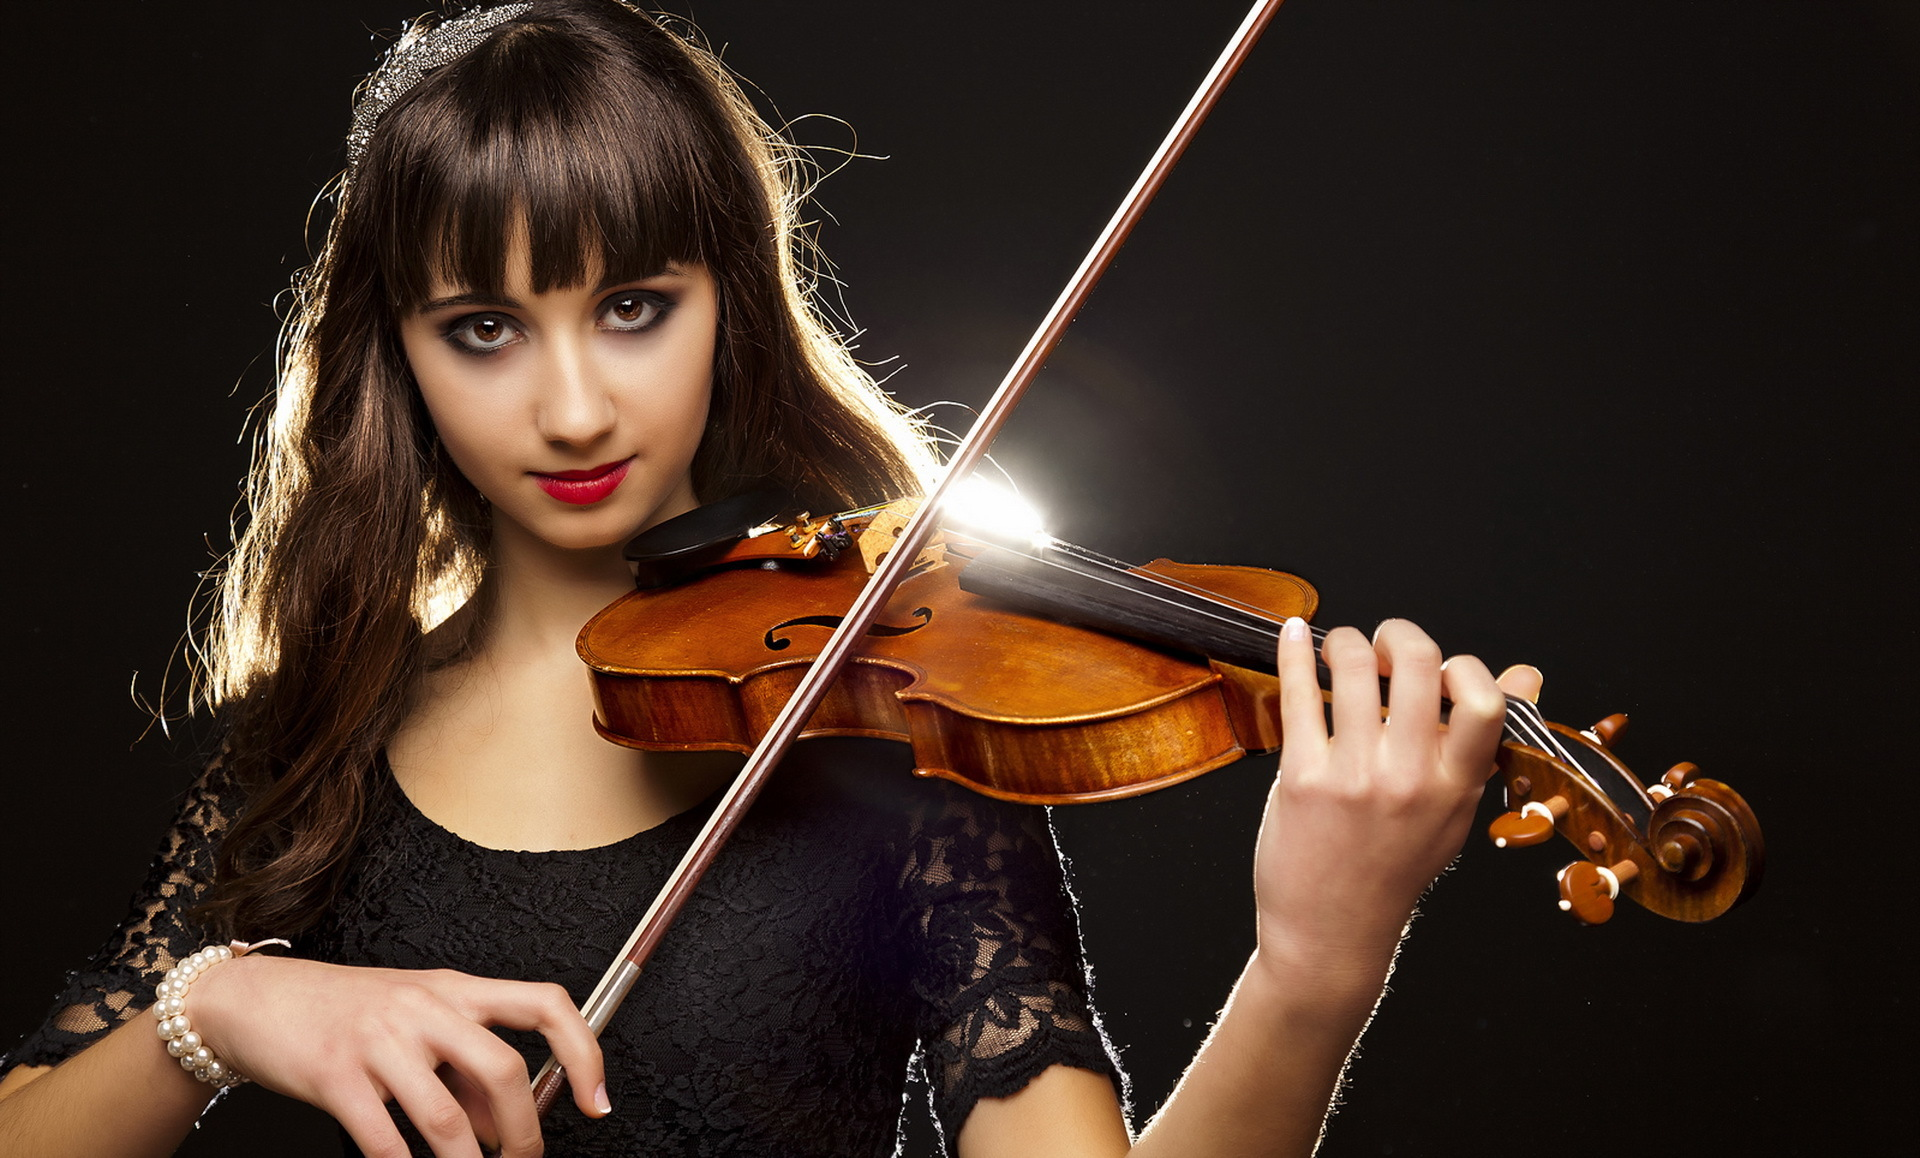 The Magic Violin Mayra Calvani KC Snider on Amazoncom FREE shipping on qualifying offers Eightyear old Melina wants to become a good violinist When she